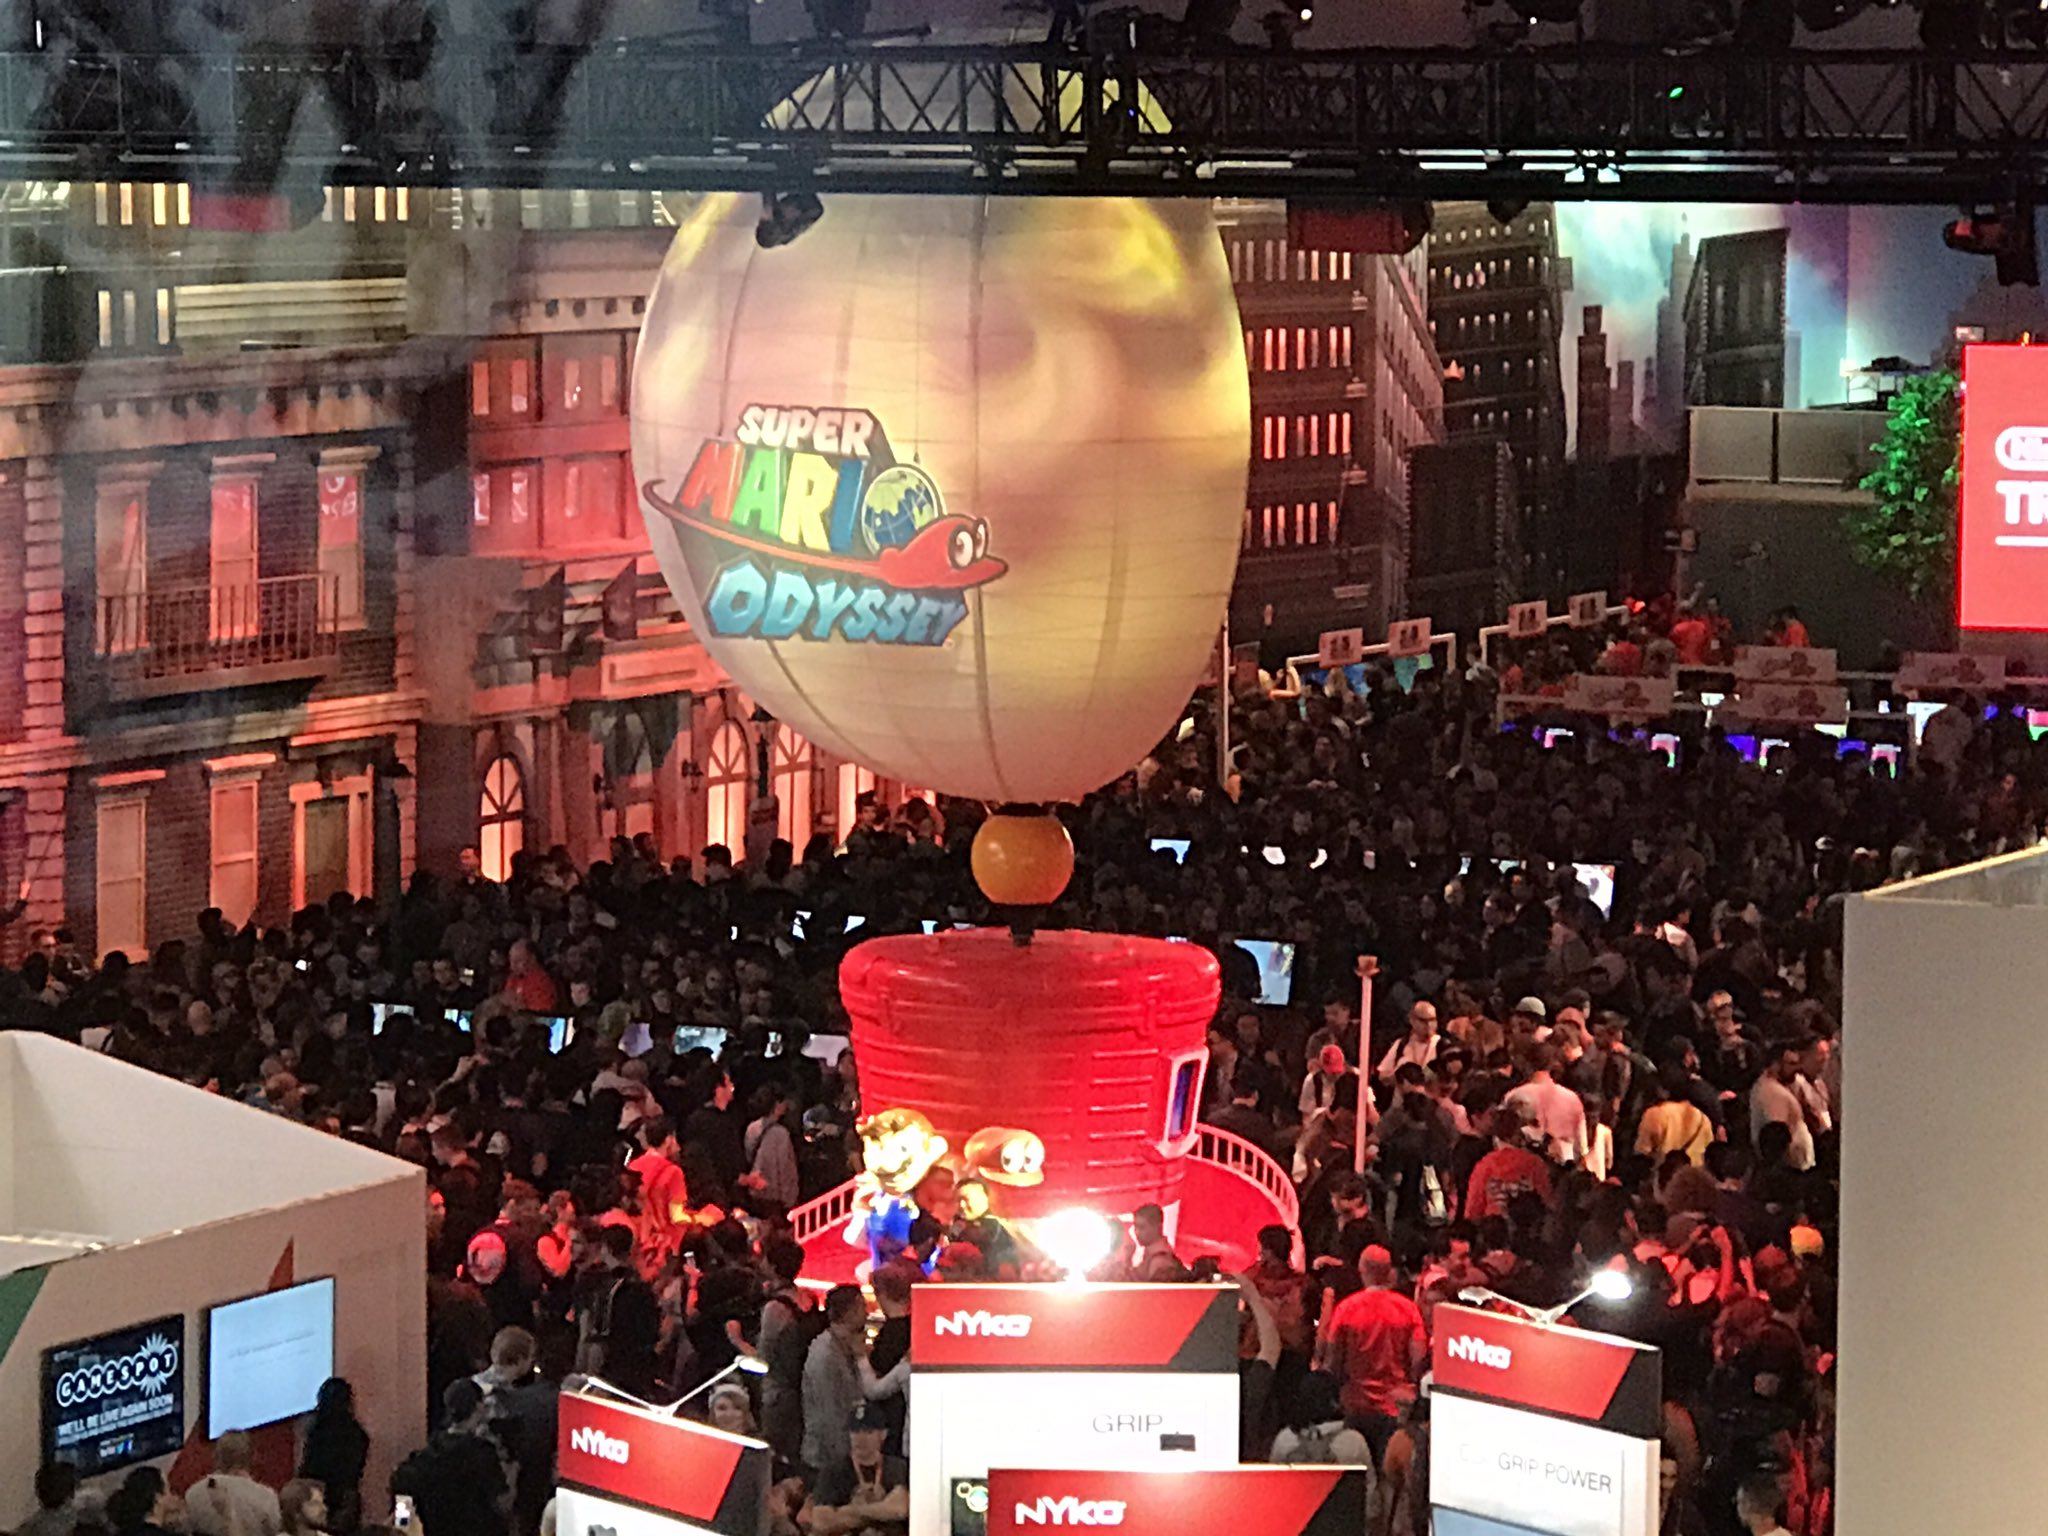 The Nintendo booth at E3 is so packed it's insane!